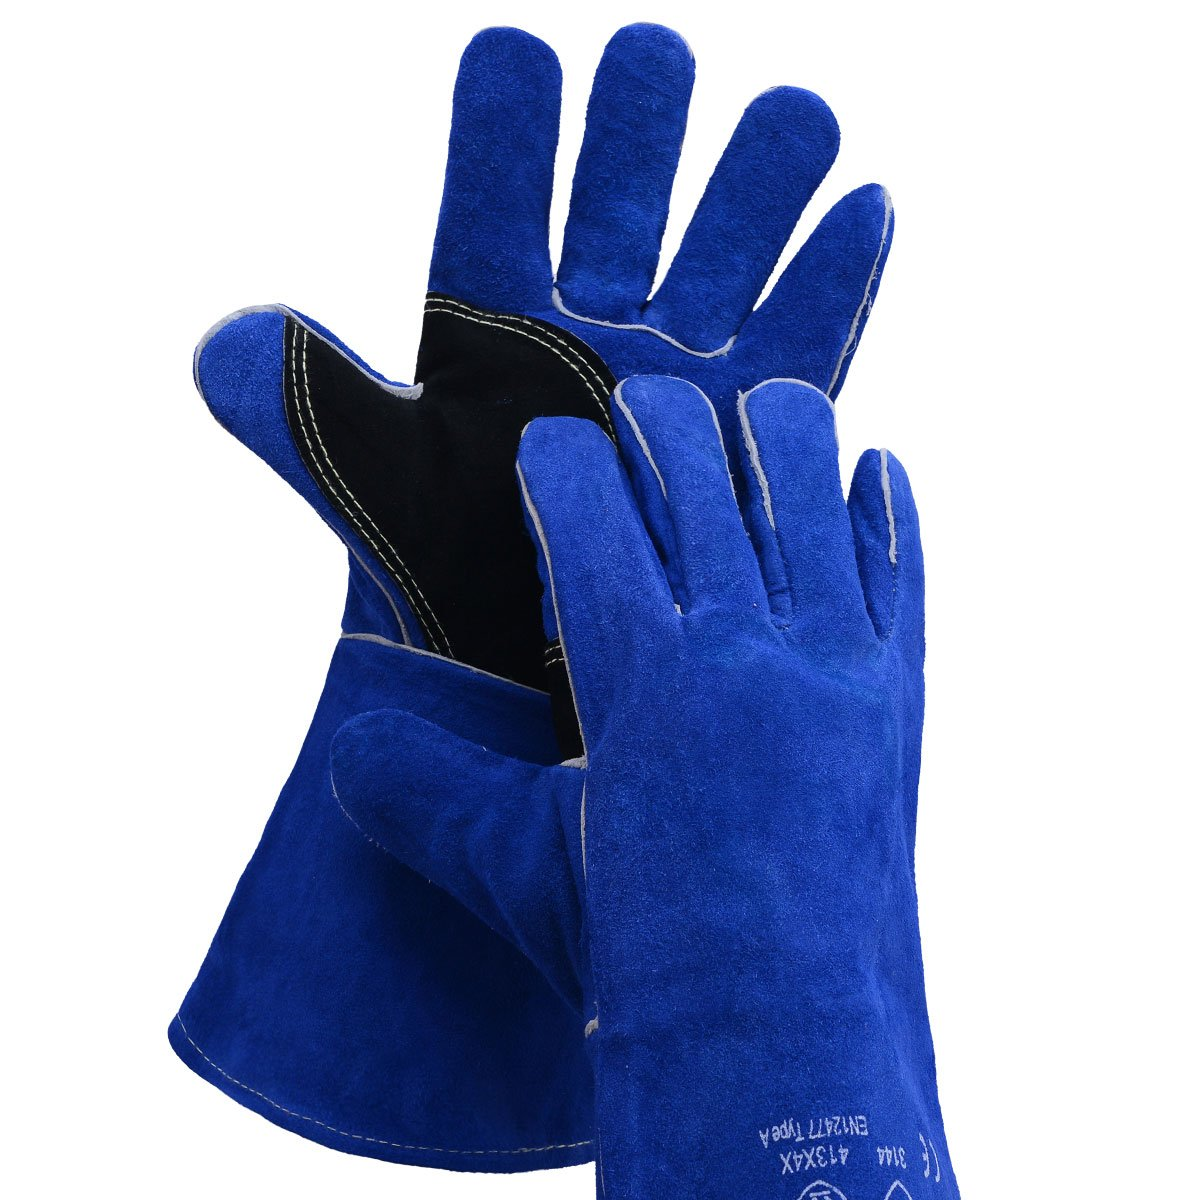 BOWOO Leather Welding Gloves Stitching Heat Resistant Glove for Tig/Mig/Stick/Gardening 14IN,1 pair (Blue-Black)